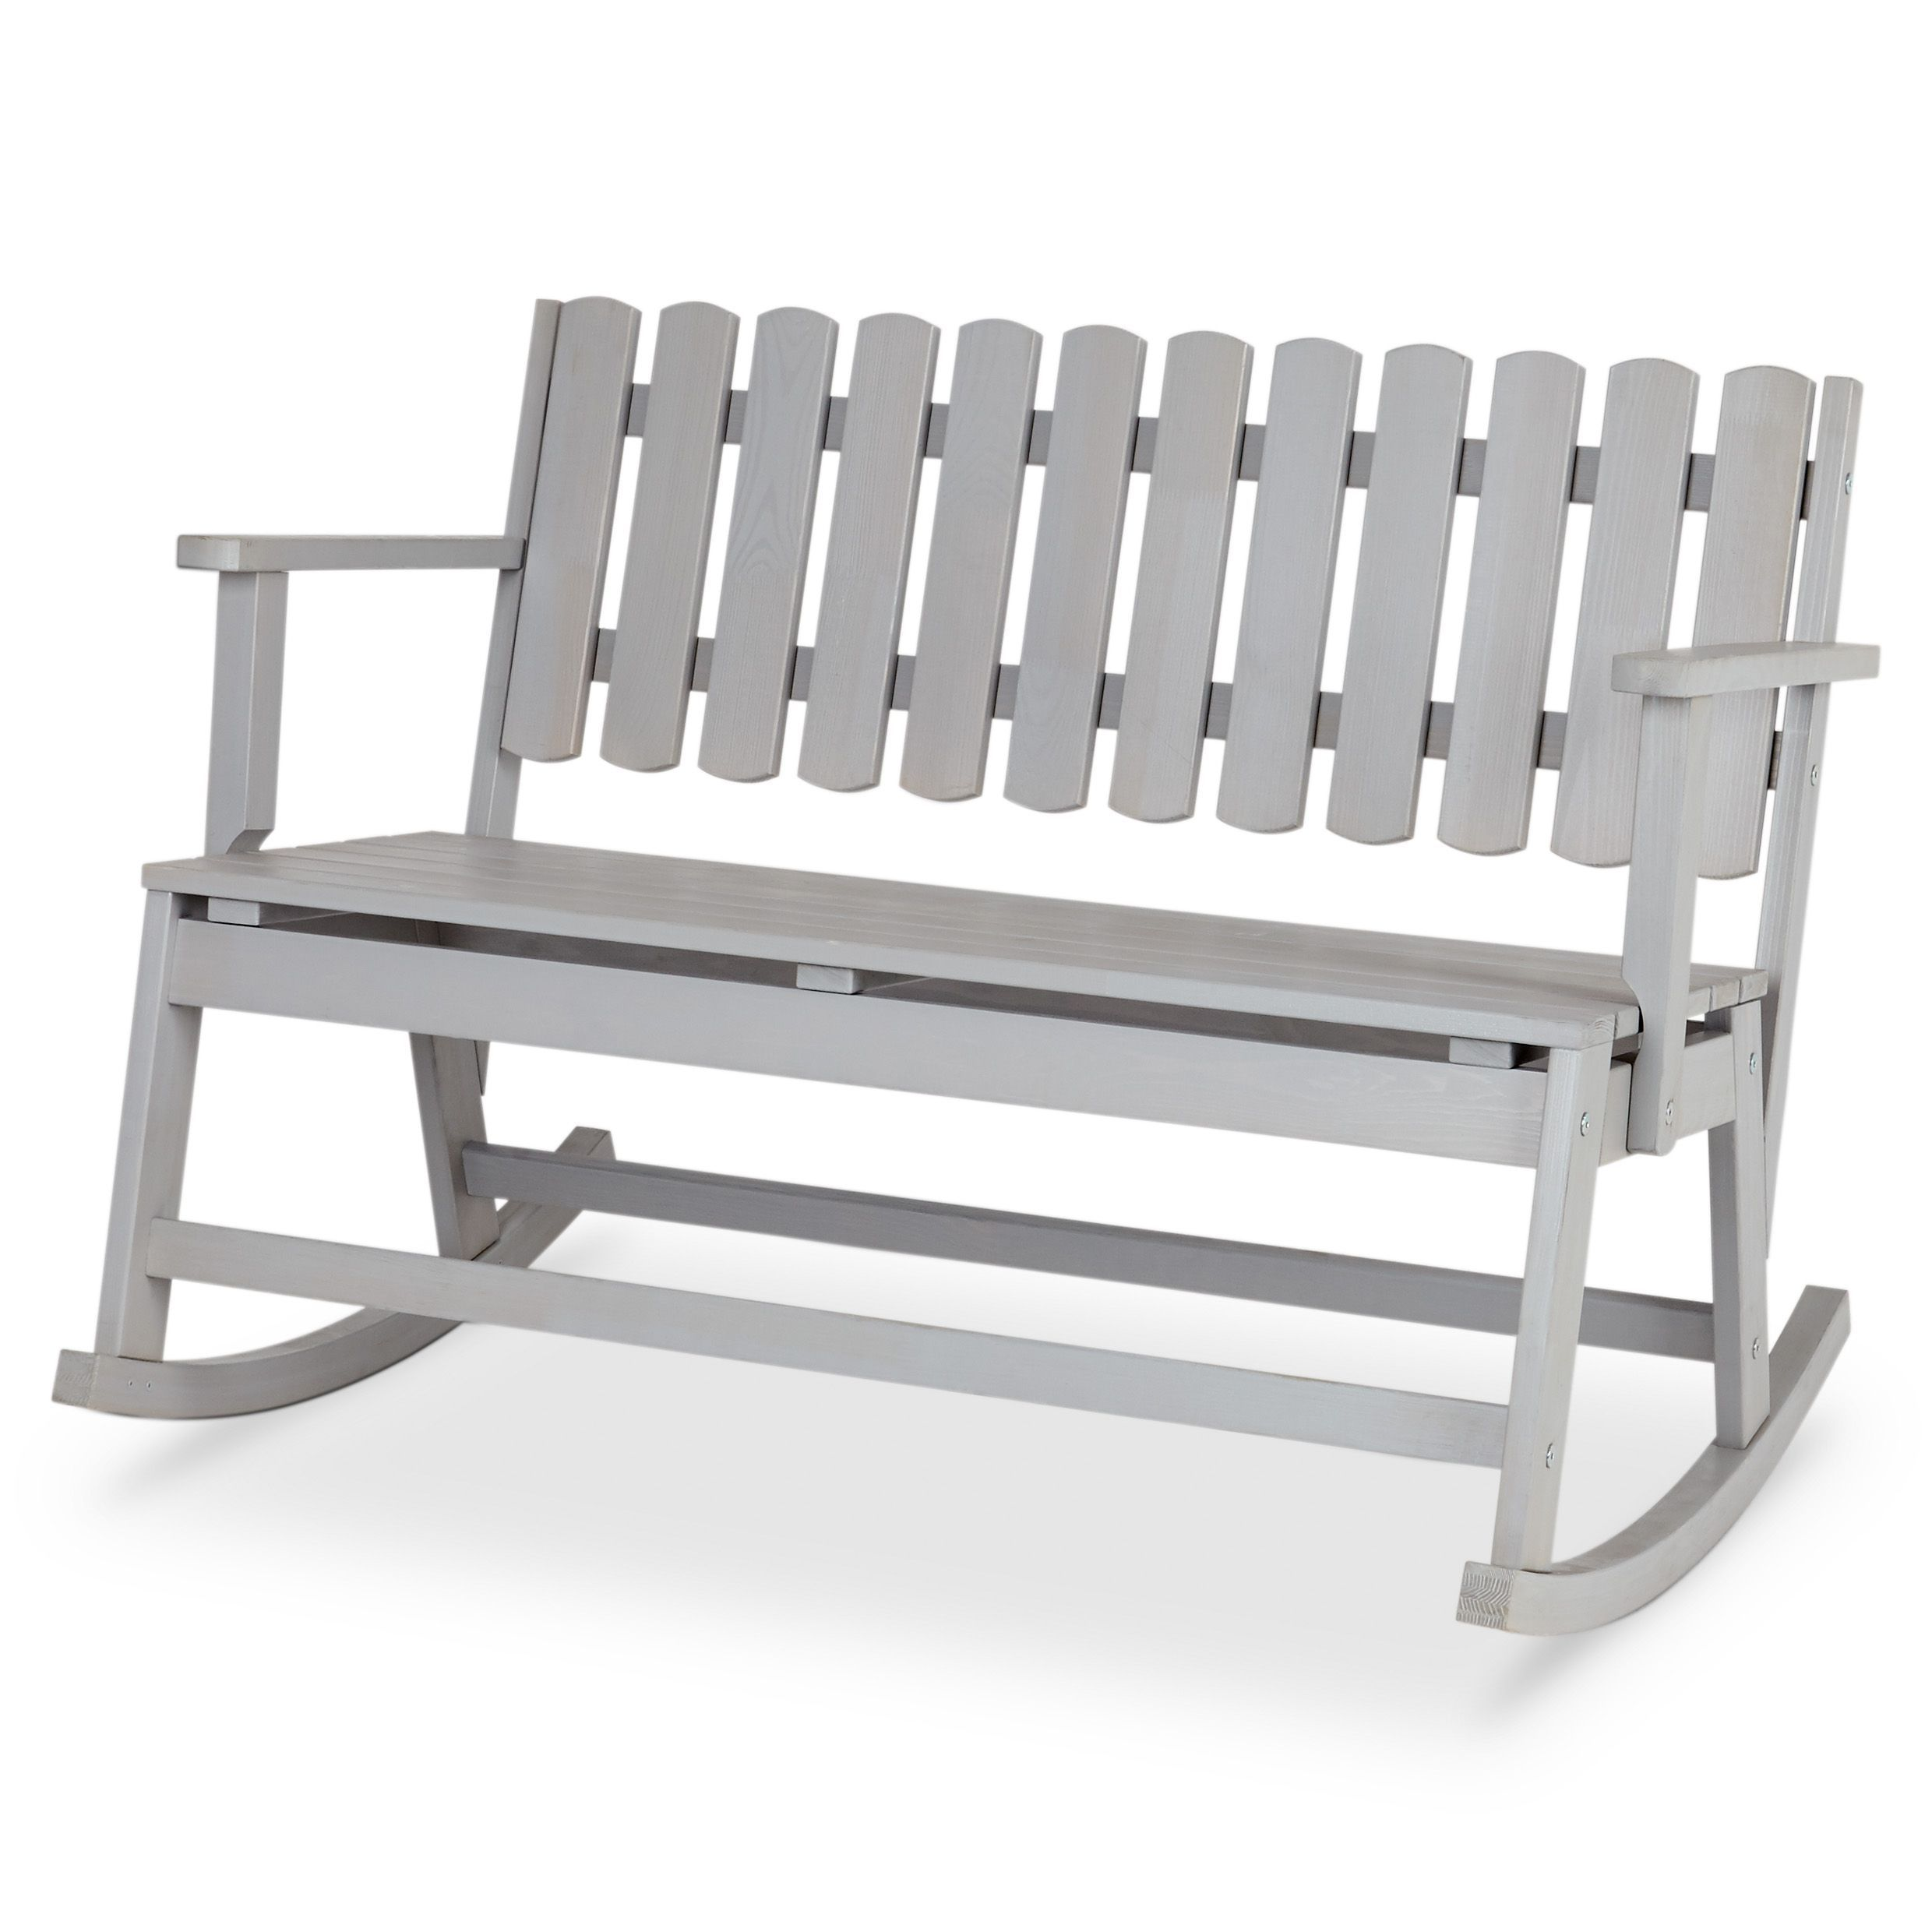 Stupendous Rural Wooden Double Rocking Chair Bq For All Your Home Ibusinesslaw Wood Chair Design Ideas Ibusinesslaworg